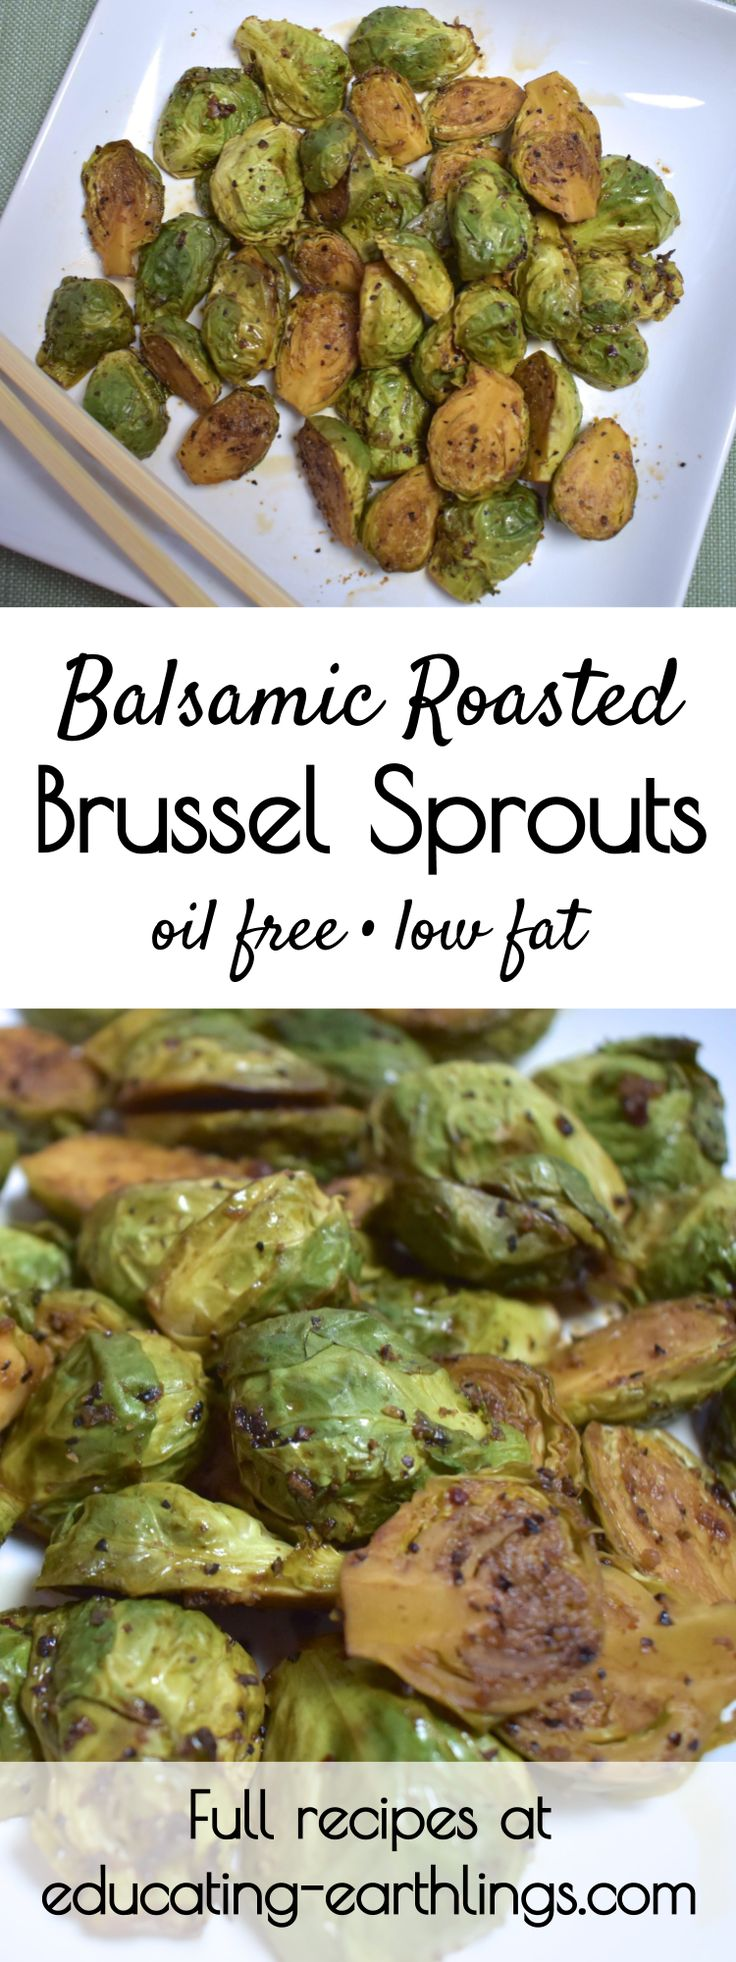 Oil Free Brussel Sprouts | roasted brussel sprouts | healthy roasted brussel sprouts I would omit the agave/sweet and just do garlic and herbs and balsamic, this is generally how I like them.